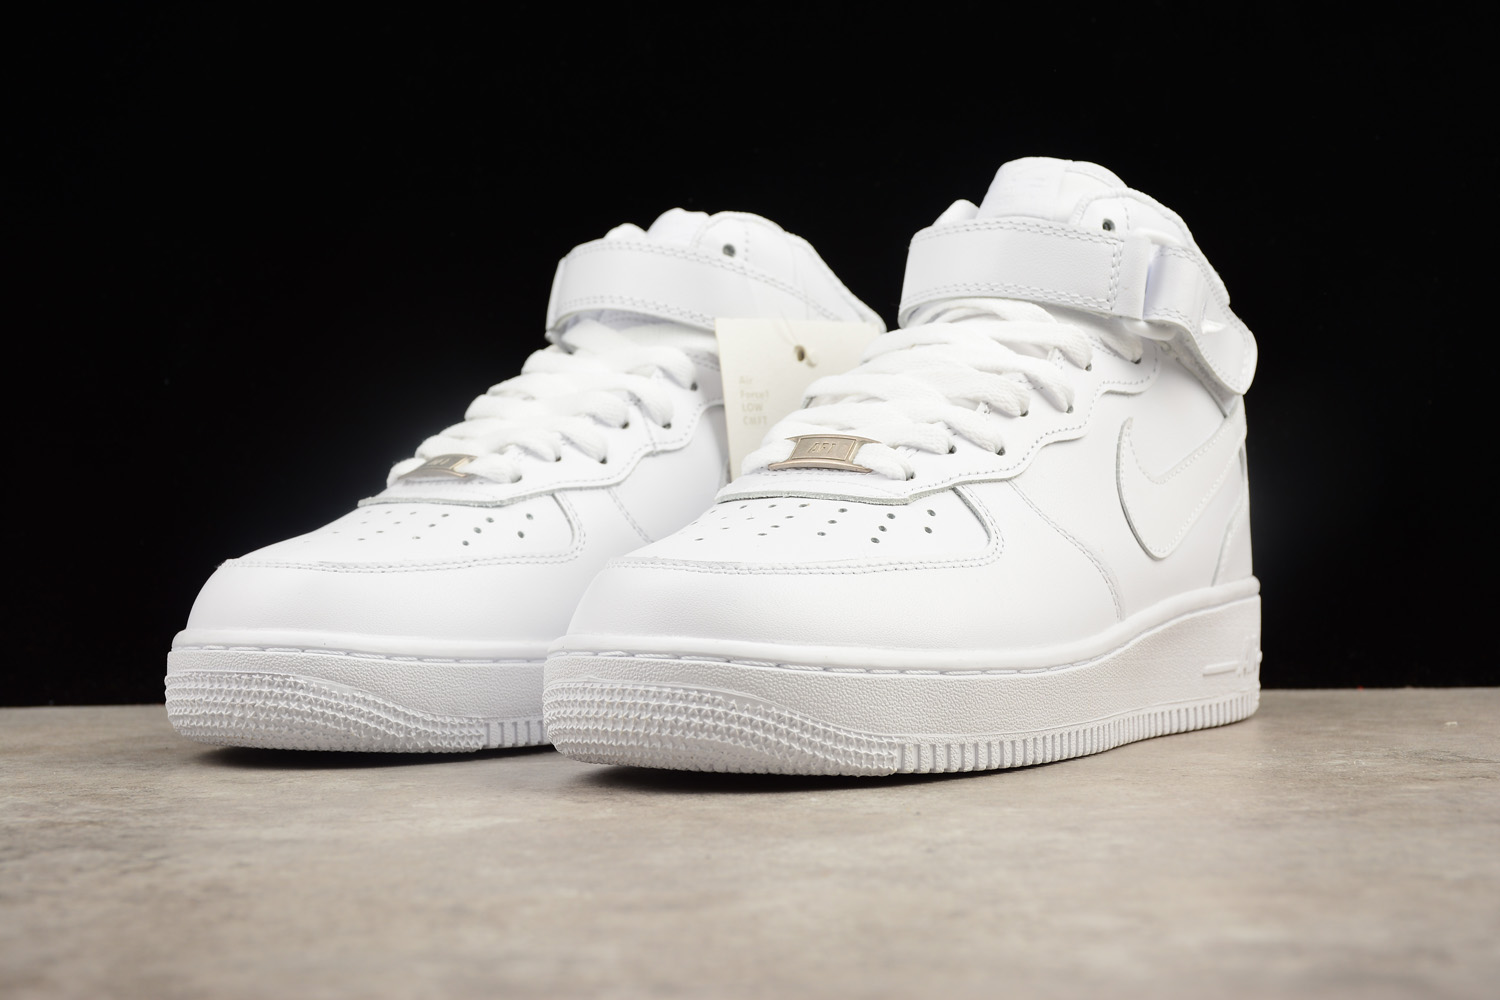 ce11a30f219a71 On White Fashion Af1 Nike Storenvy High Air Force 1 Shoes Lv8 SpaAO